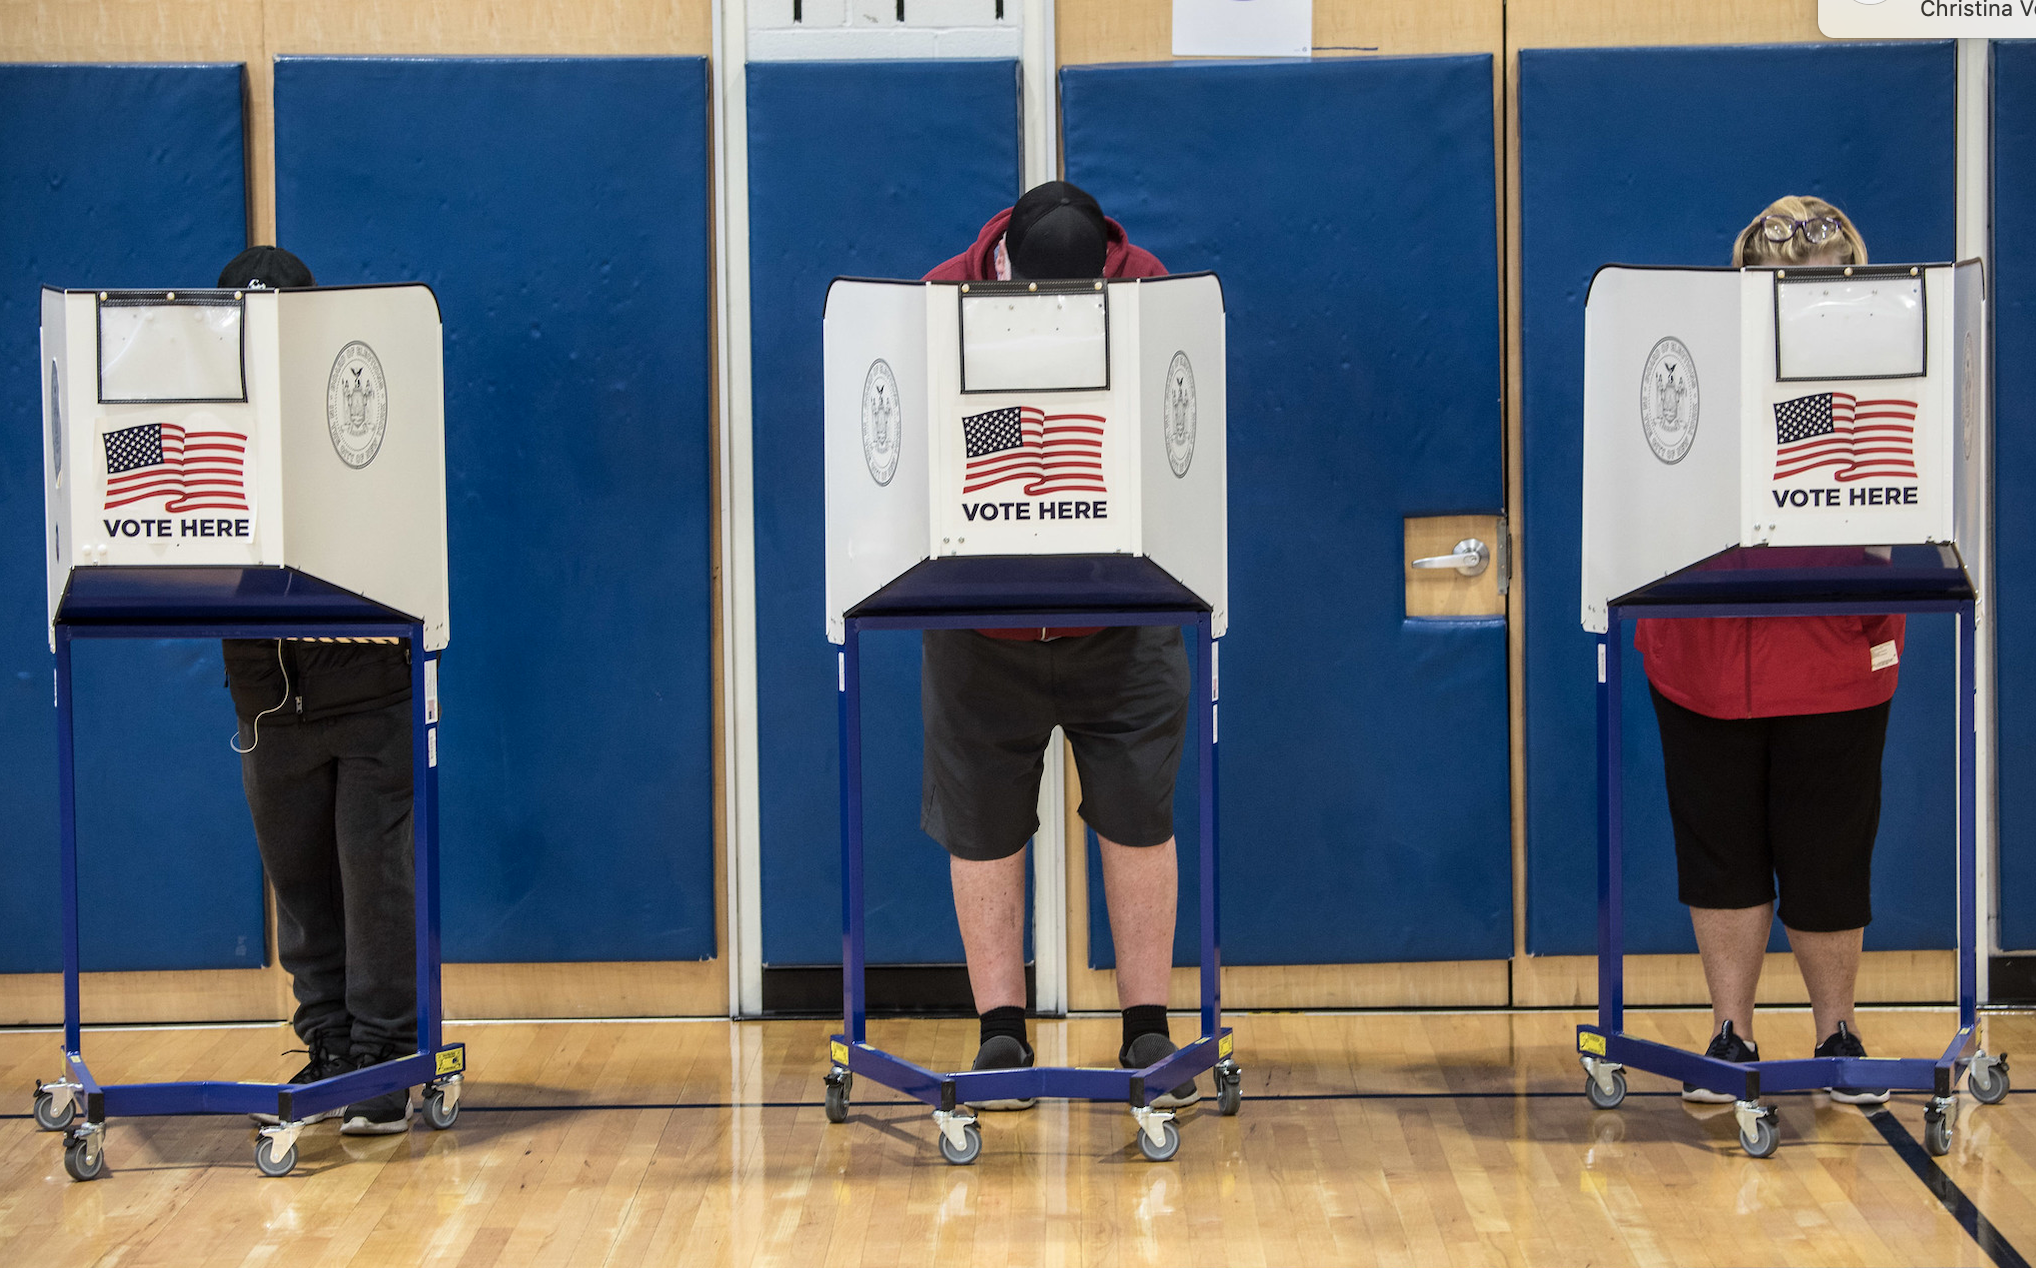 Three people stand behind voting partitions against a blue divider.